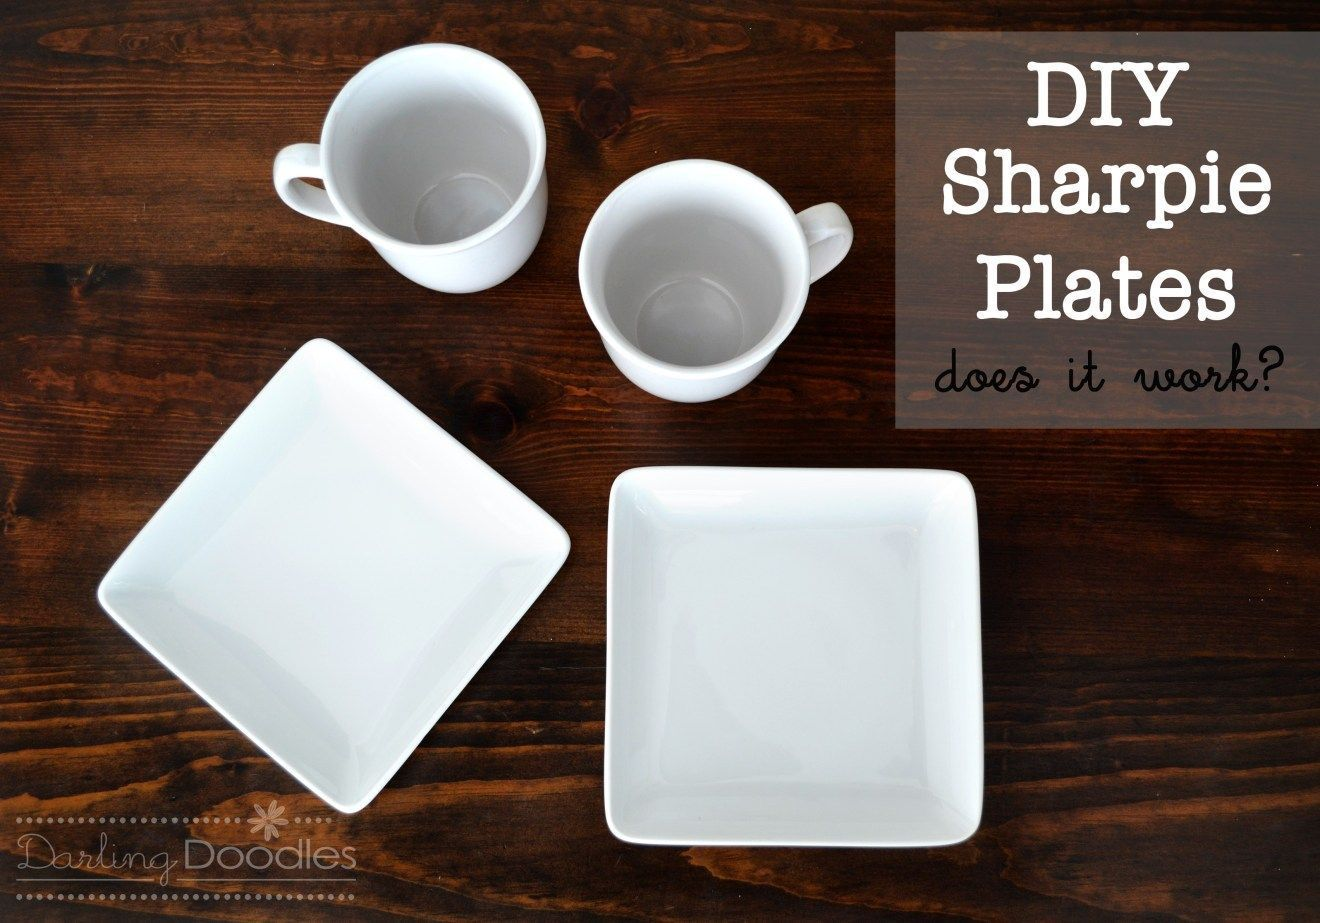 Sharpie Plates...does it work #sharpieplates Sharpie Plates...does it work? - Darling Doodles #sharpieplates Sharpie Plates...does it work #sharpieplates Sharpie Plates...does it work? - Darling Doodles #sharpieplates